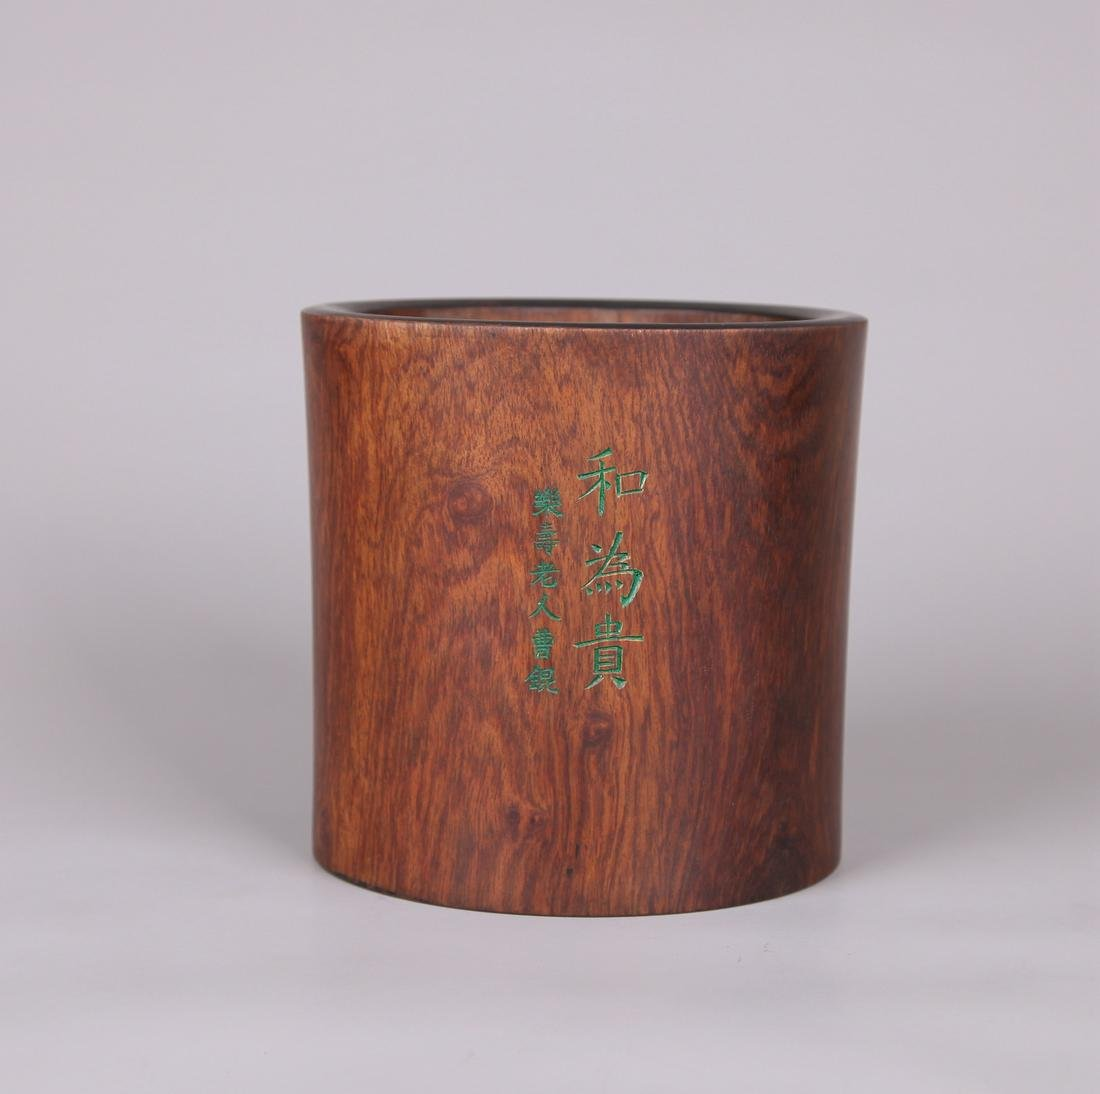 A CHINESE HUANGHUALI BRUSH POT, QING DYNASTY